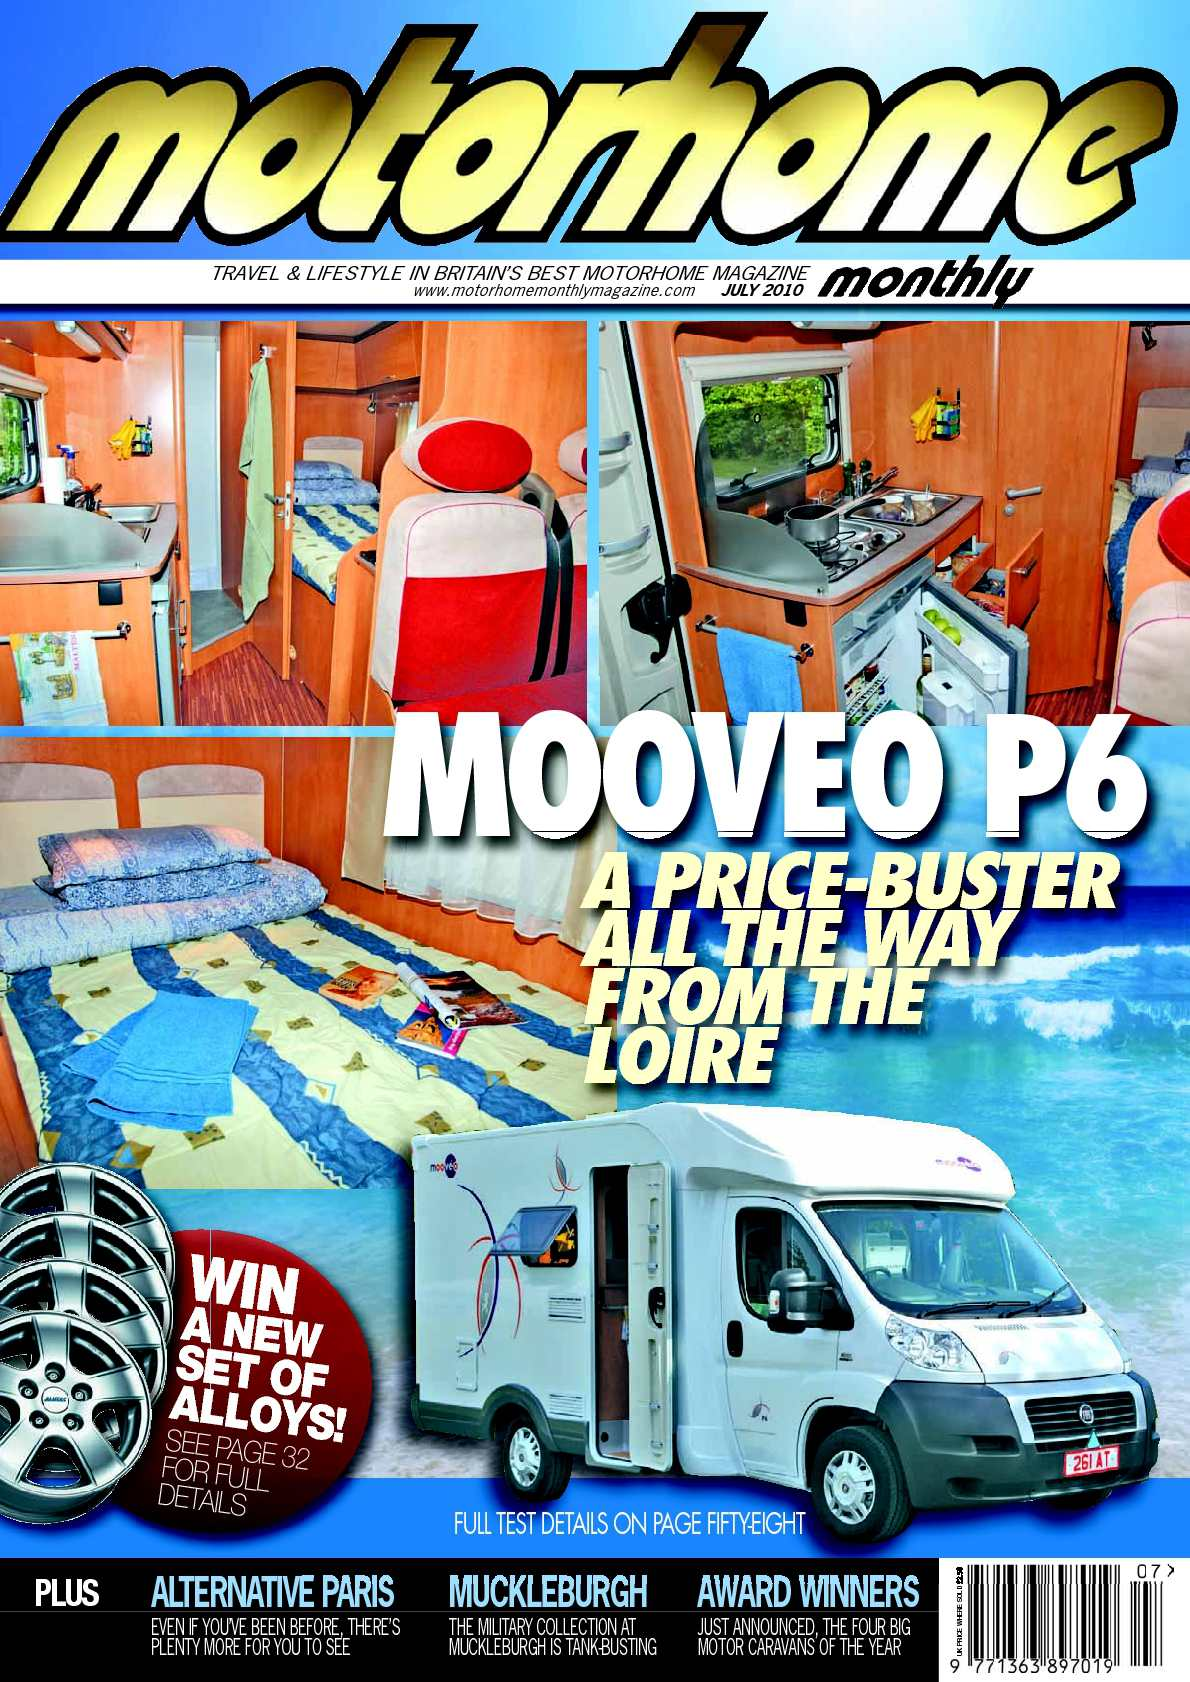 Calamo July 2010 Motorhome Monthly Magazine Georgie Boy Fuel Filter Location